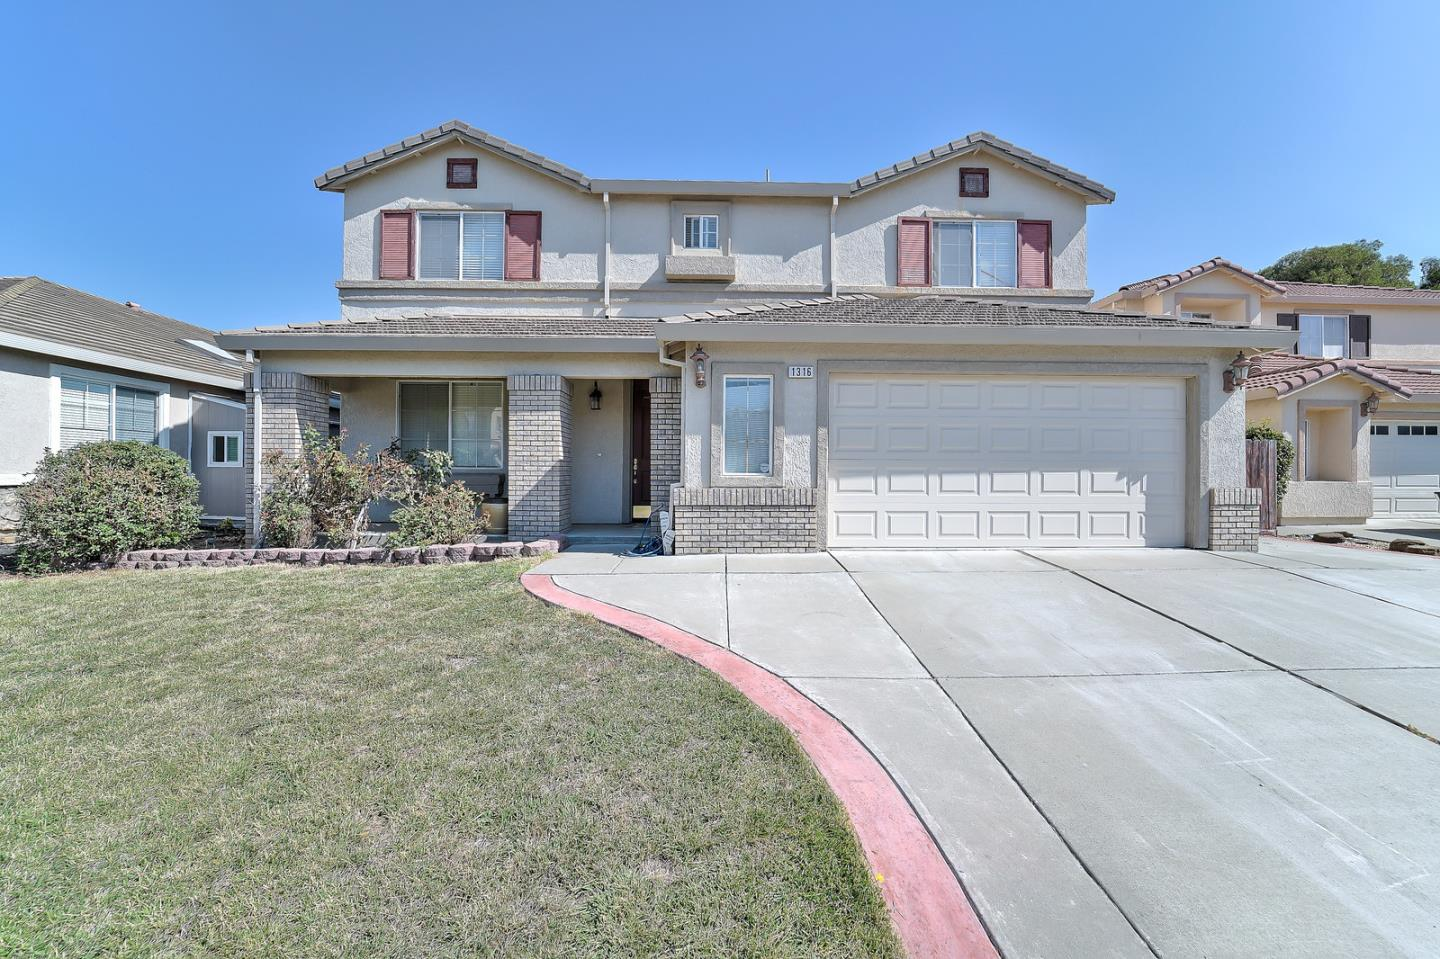 Maison unifamiliale pour l Vente à 1316 Reeves Court Suisun City, Californie 94585 États-Unis